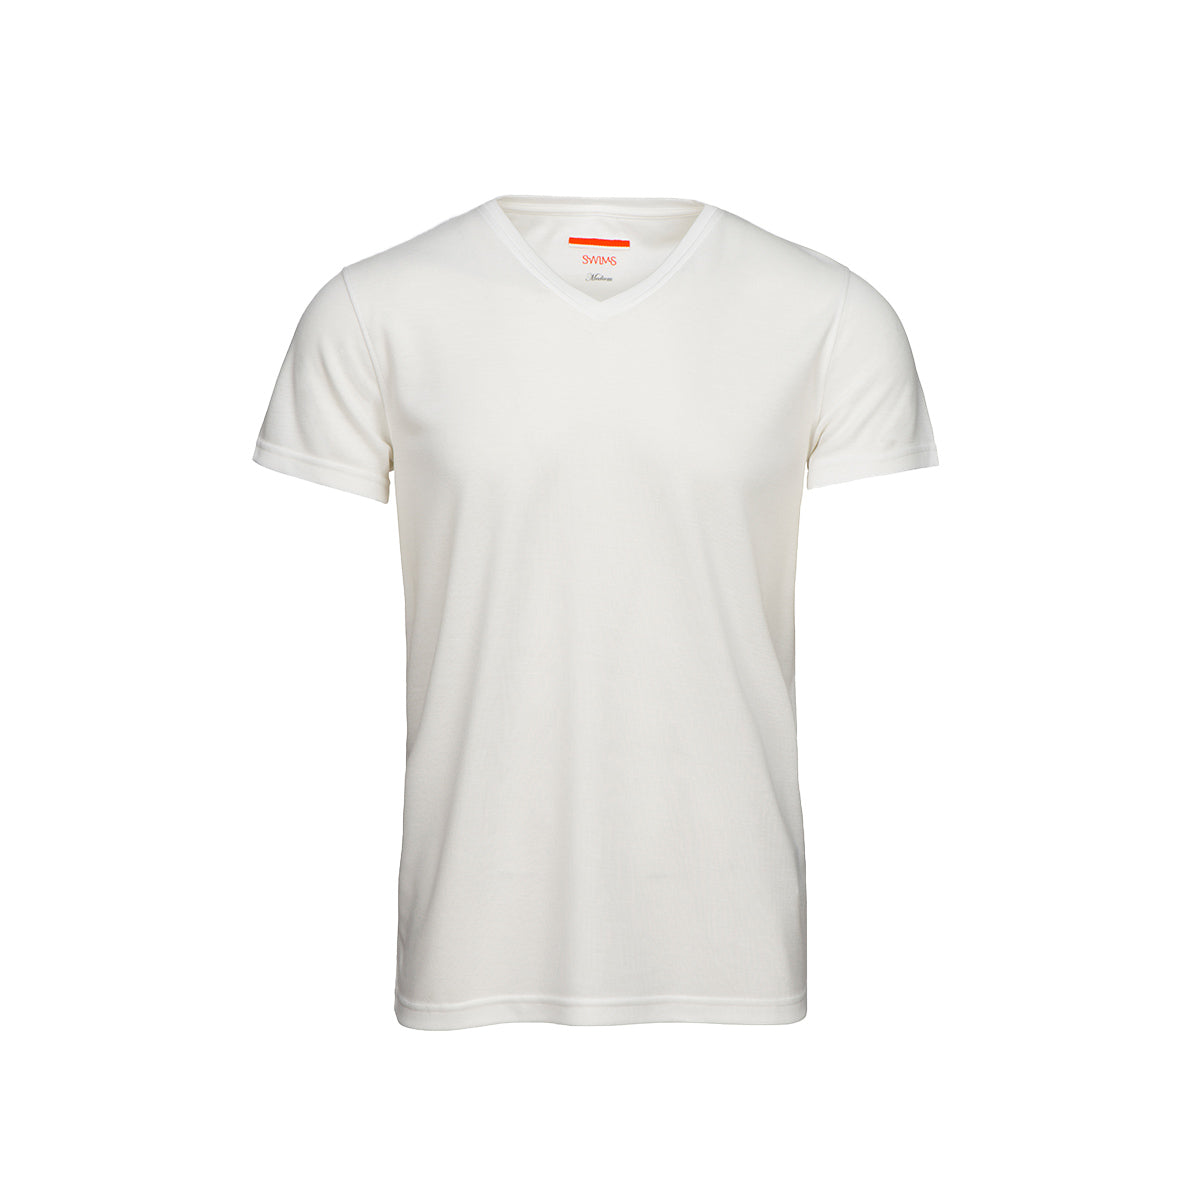 Citara V Neck T-Shirt - background::white,variant::white